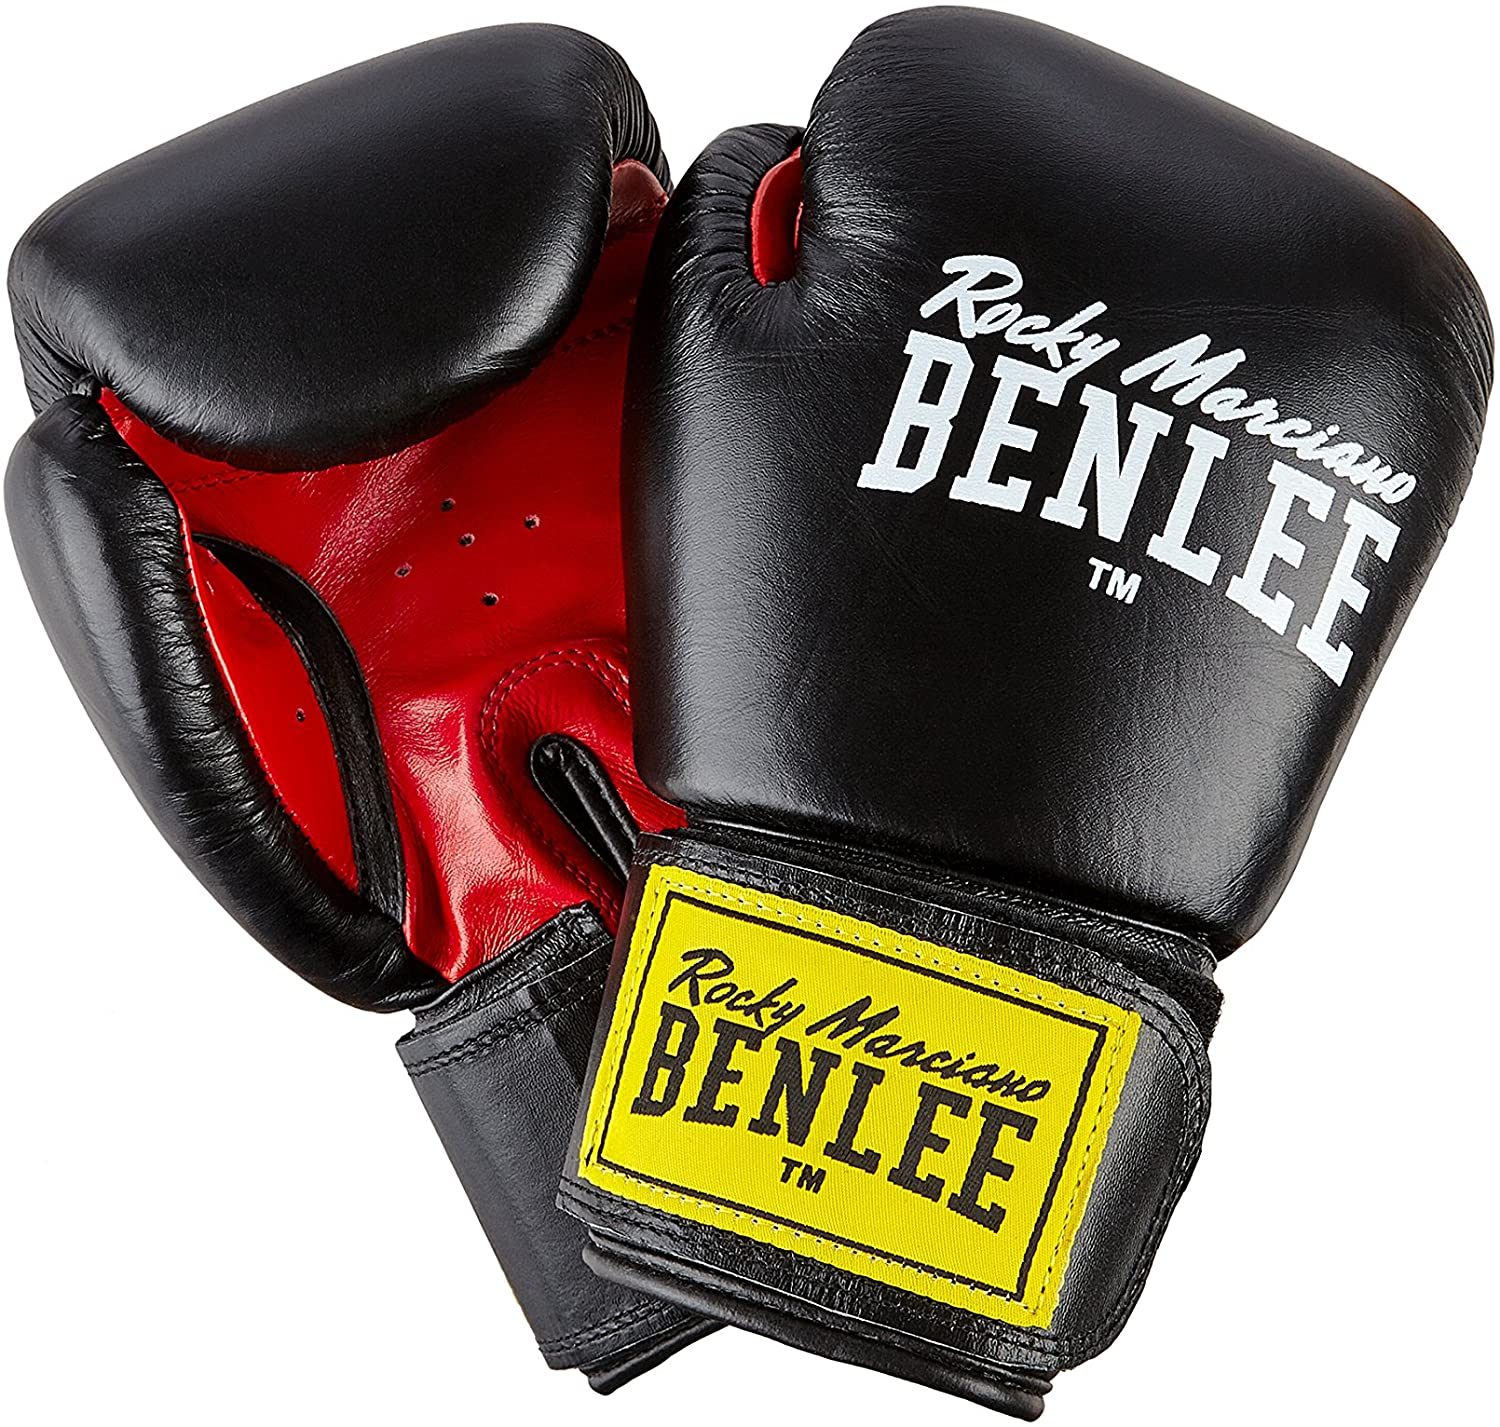 BenLee Boxing Gloves Leather Fighter